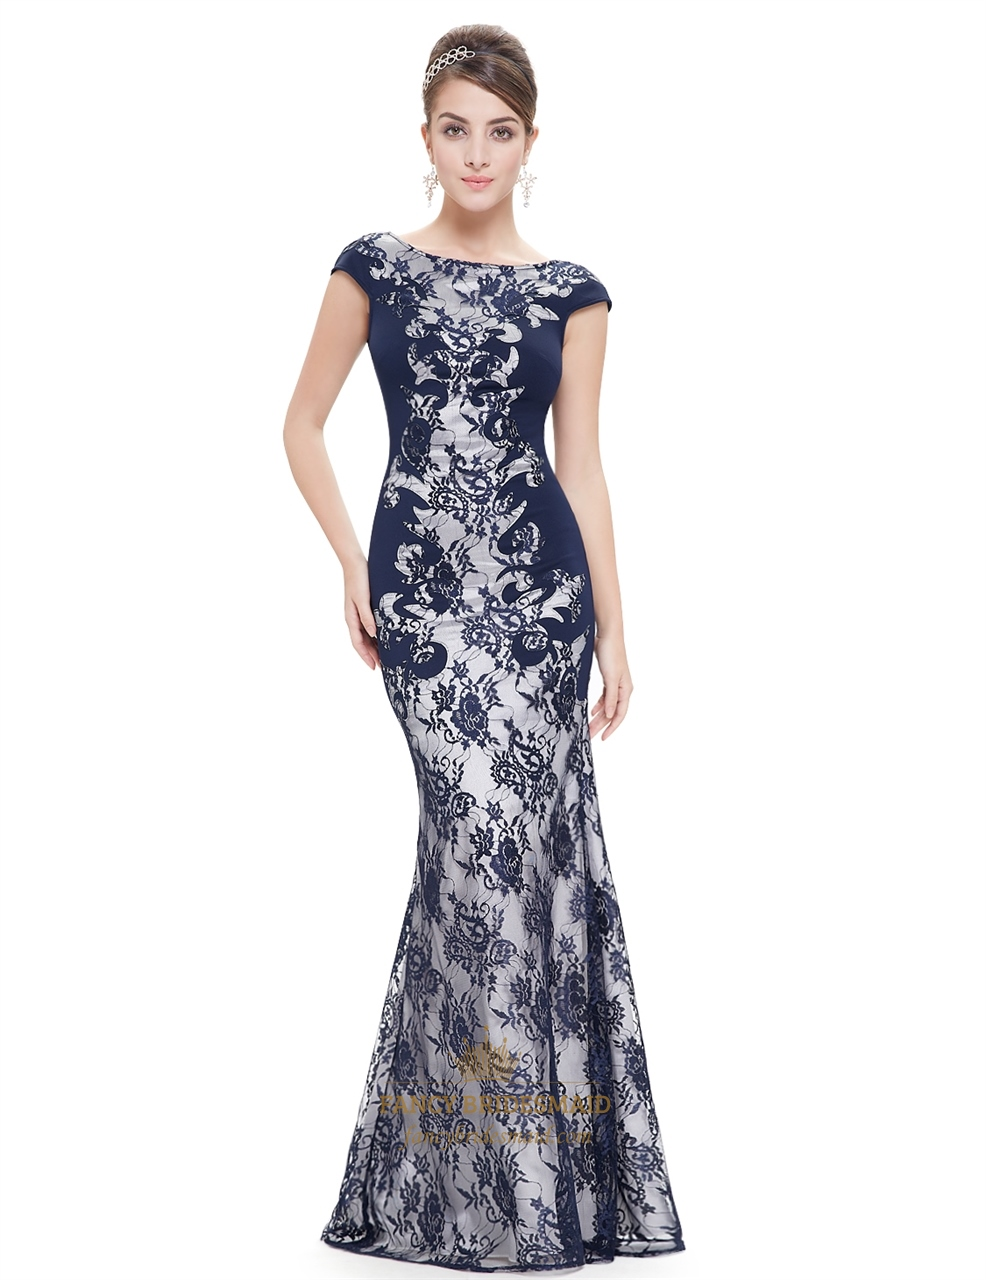 Elegant Navy Blue Mermaid Lace Prom Dress With Cap Sleeves